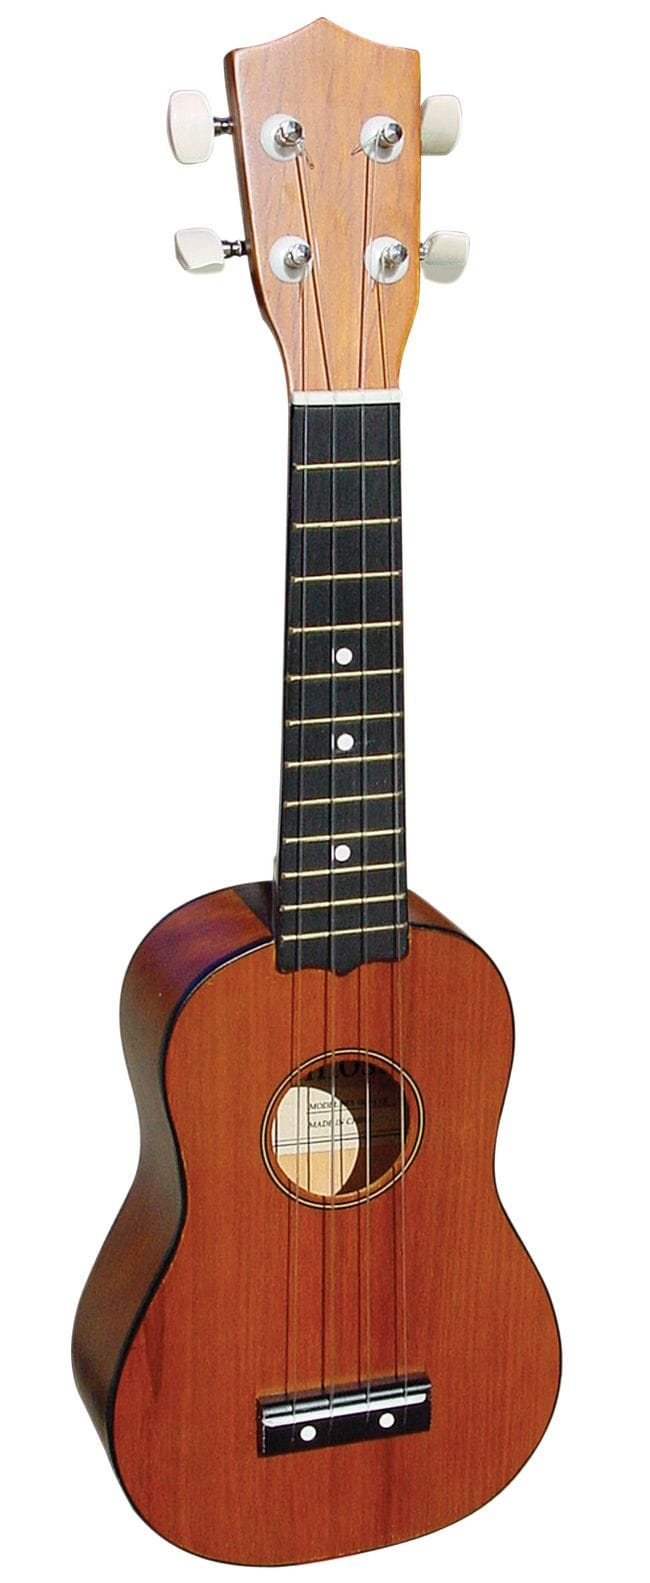 SOPRANO UKULELE IN NAT MAHOGANY FINISH